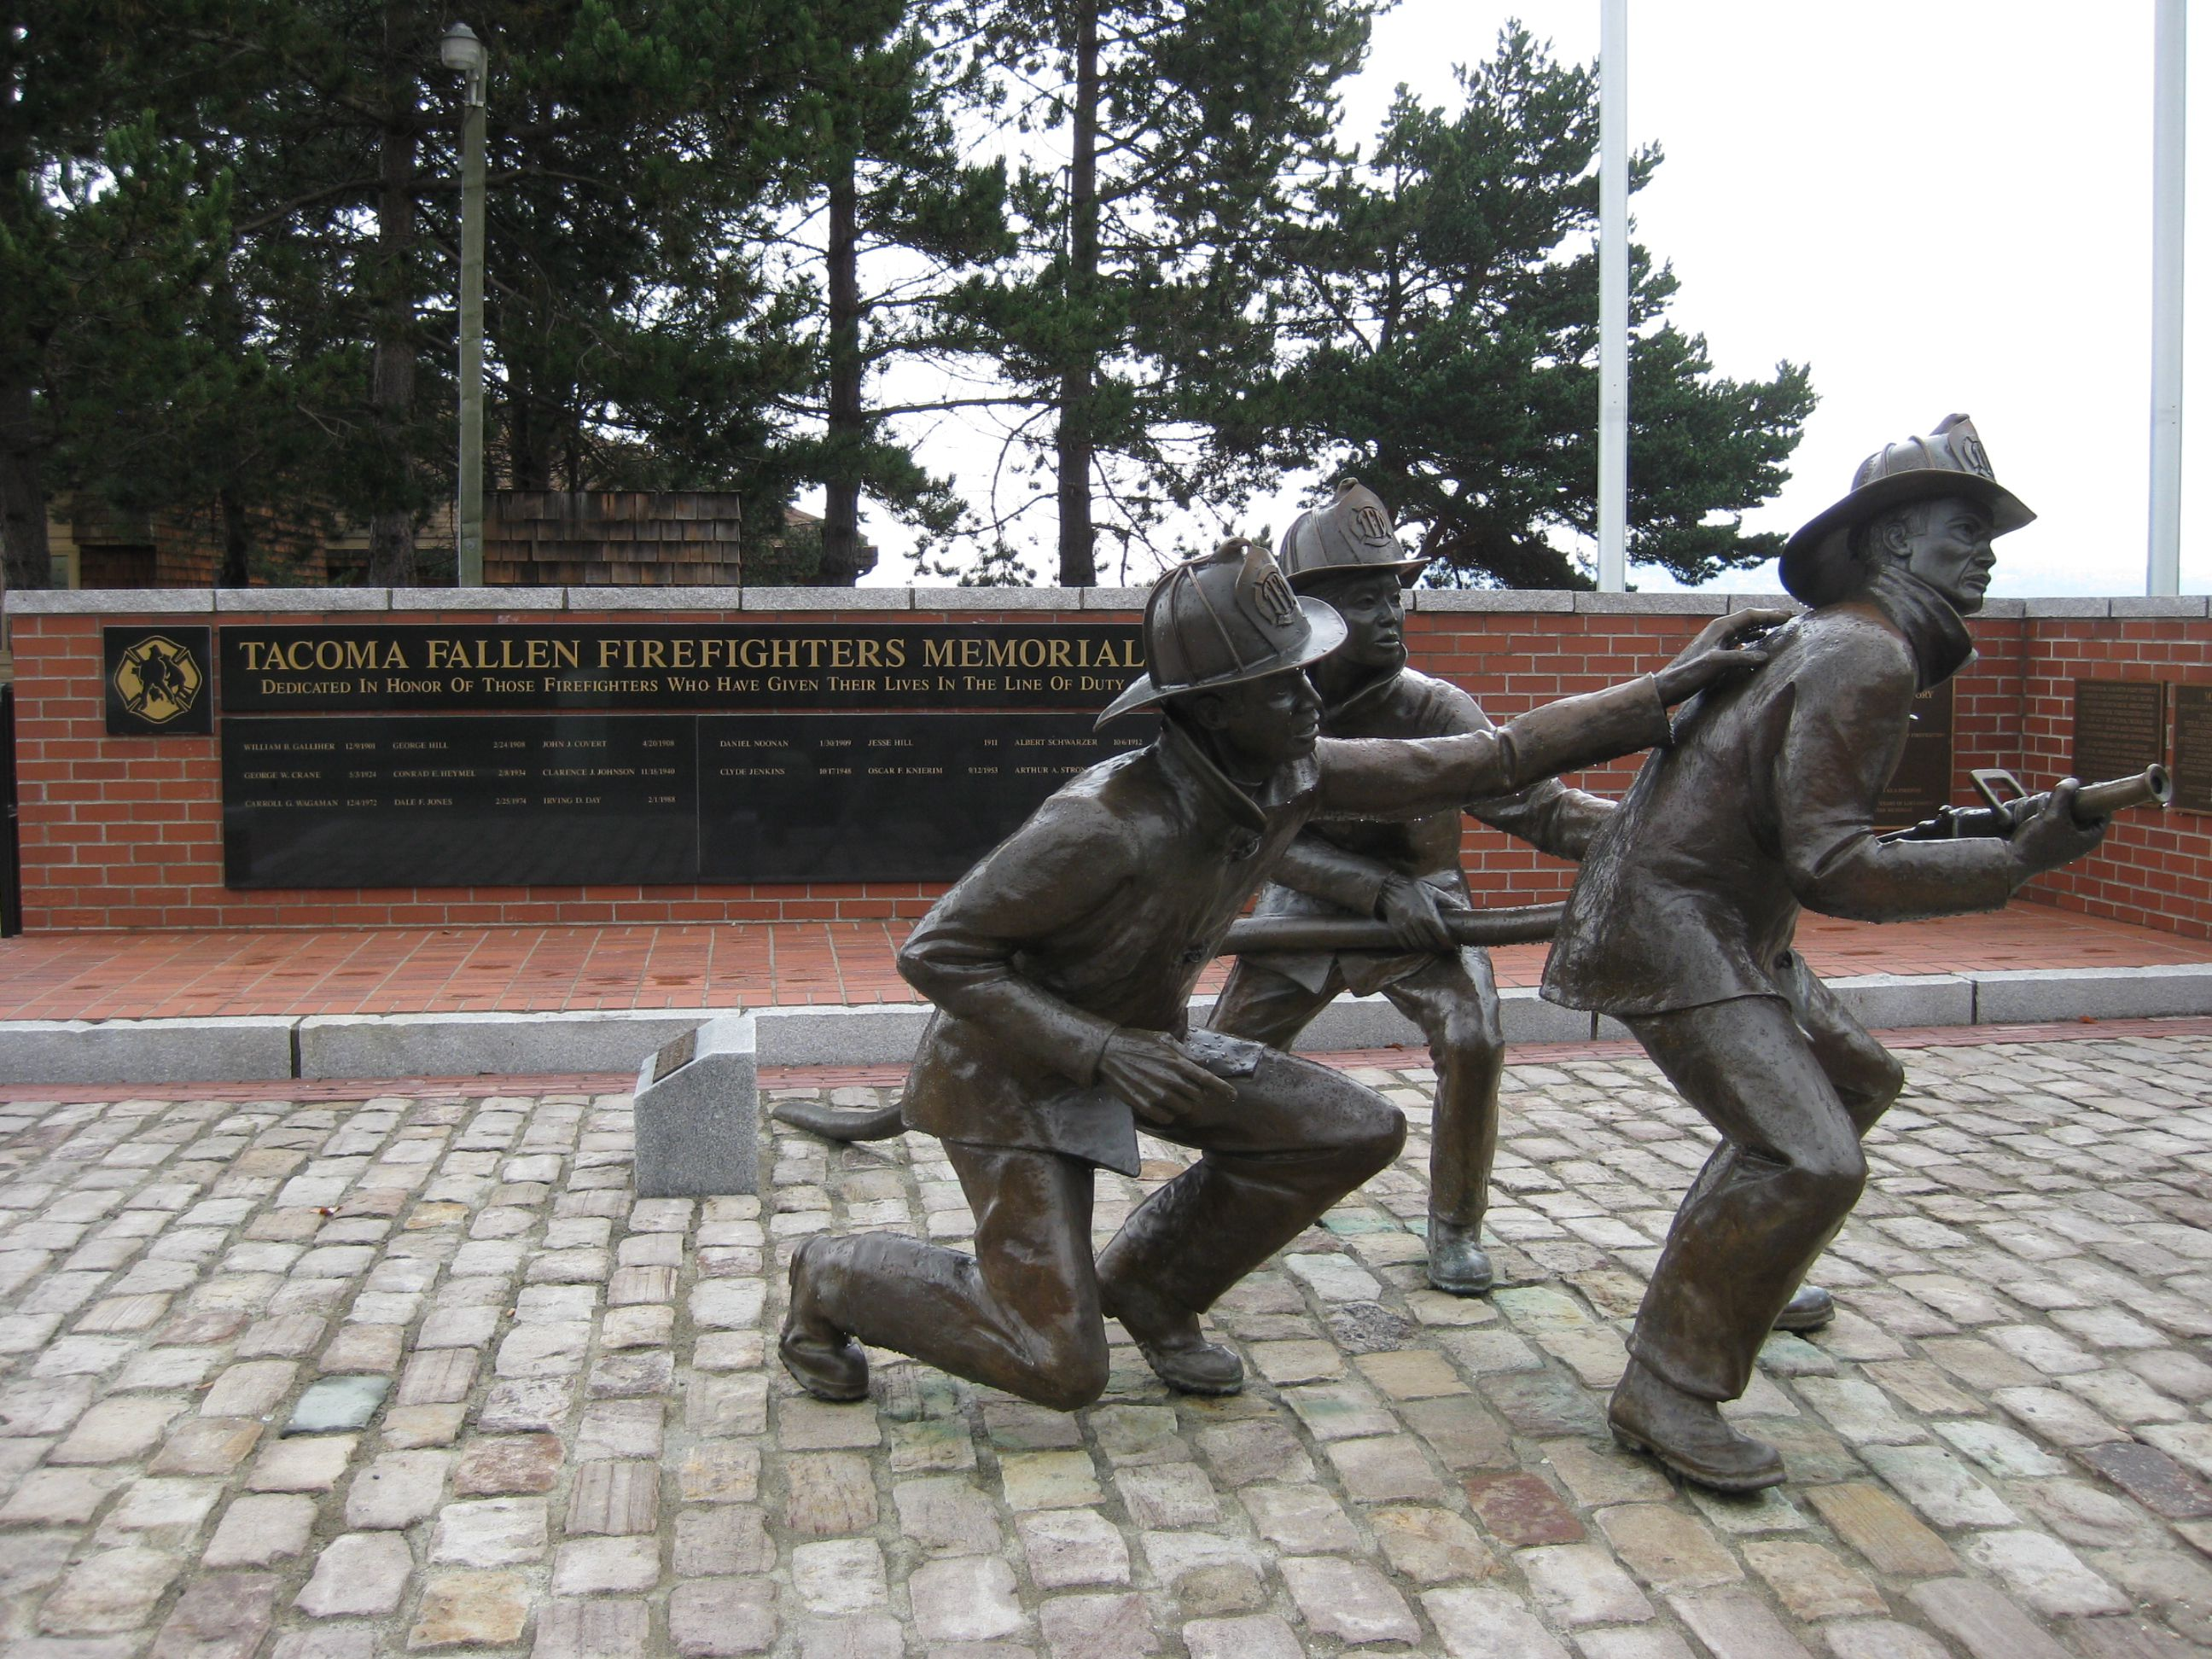 Firefighters Memorial Tacoma